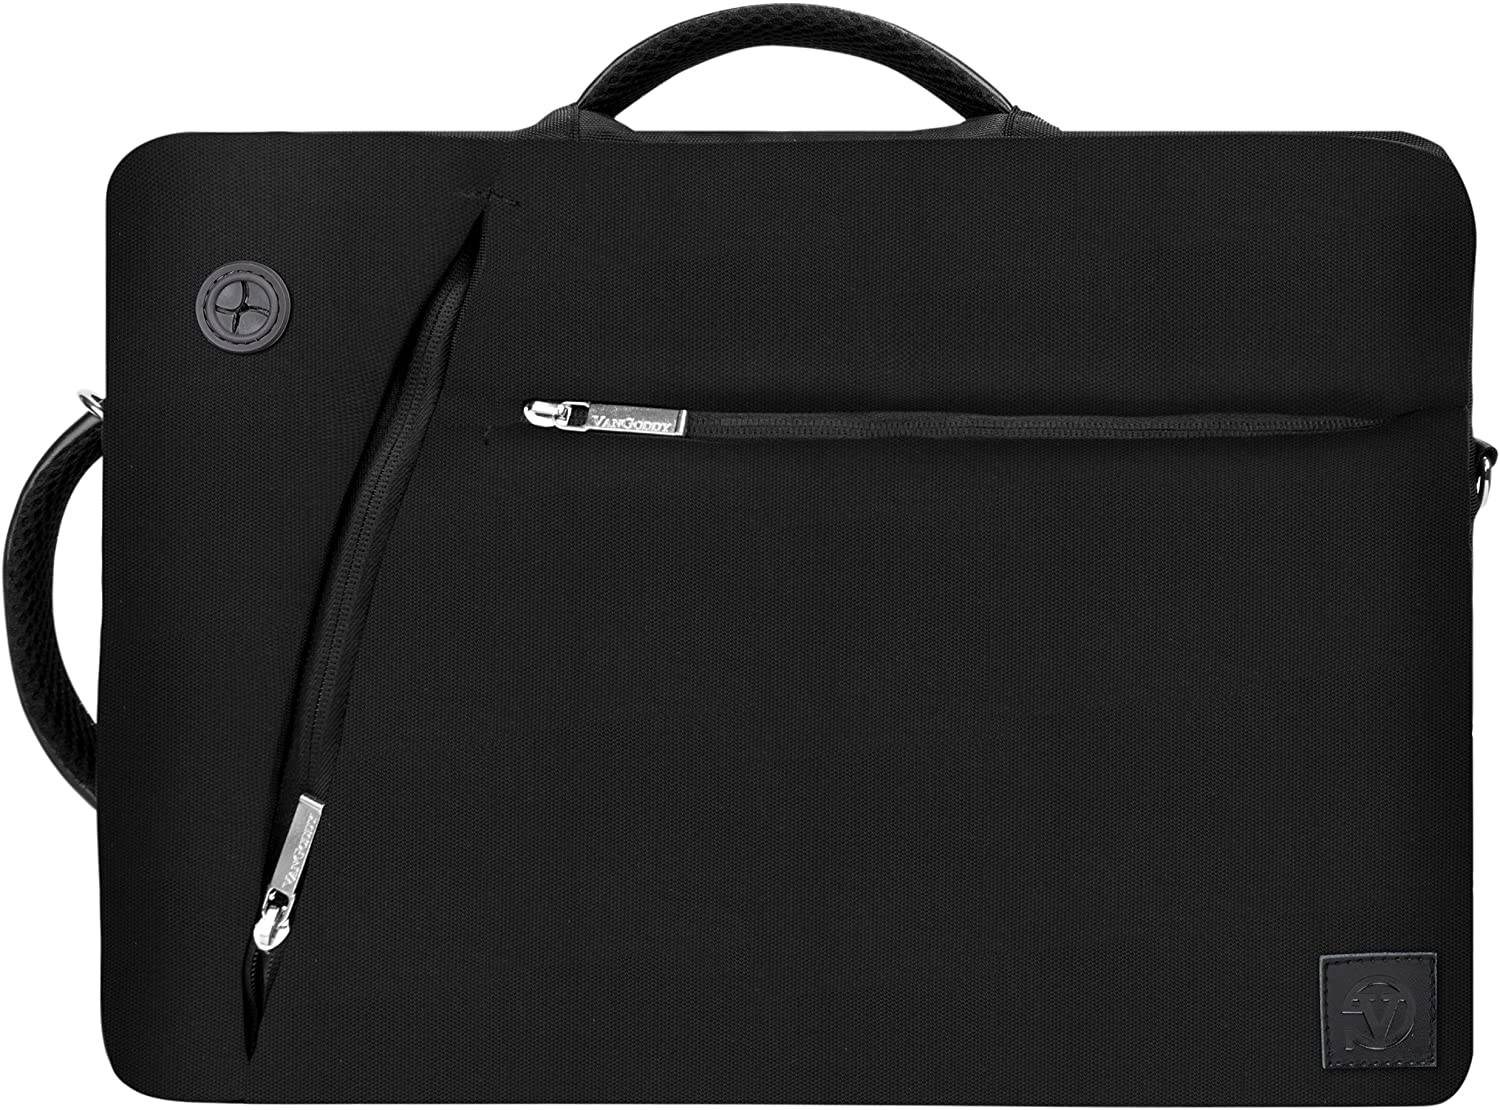 3 Way Bag for Acer Aspire, Swift, Switch, 15in Laptops